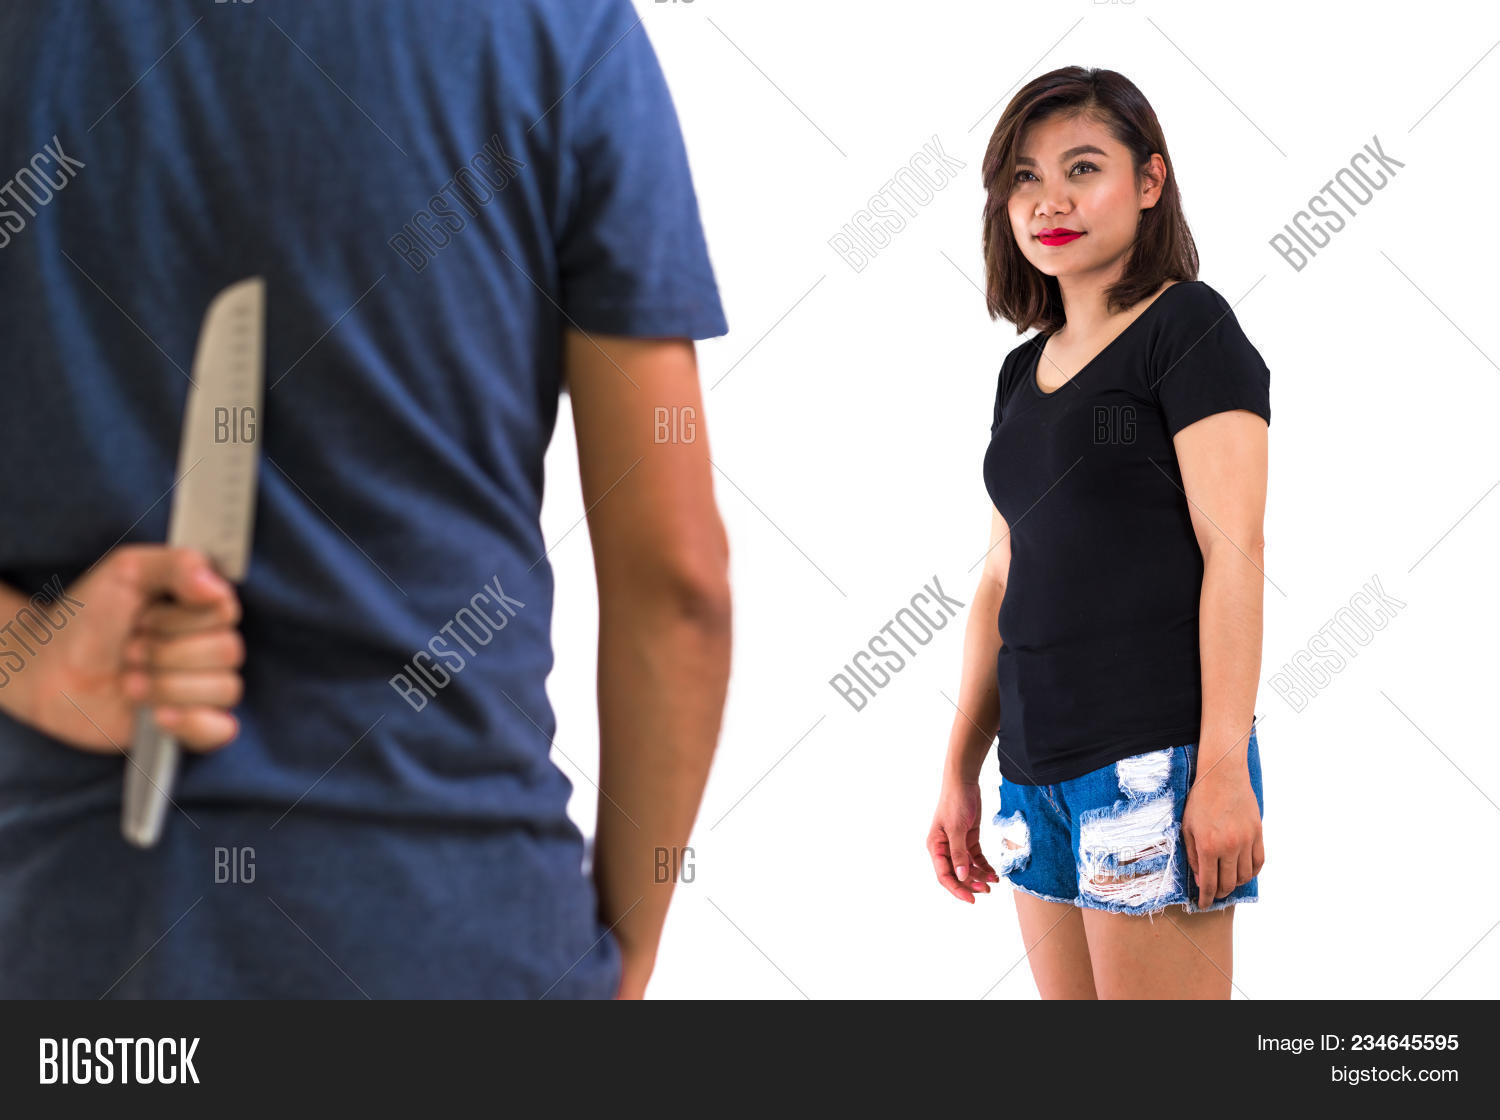 Man holding woman from behind